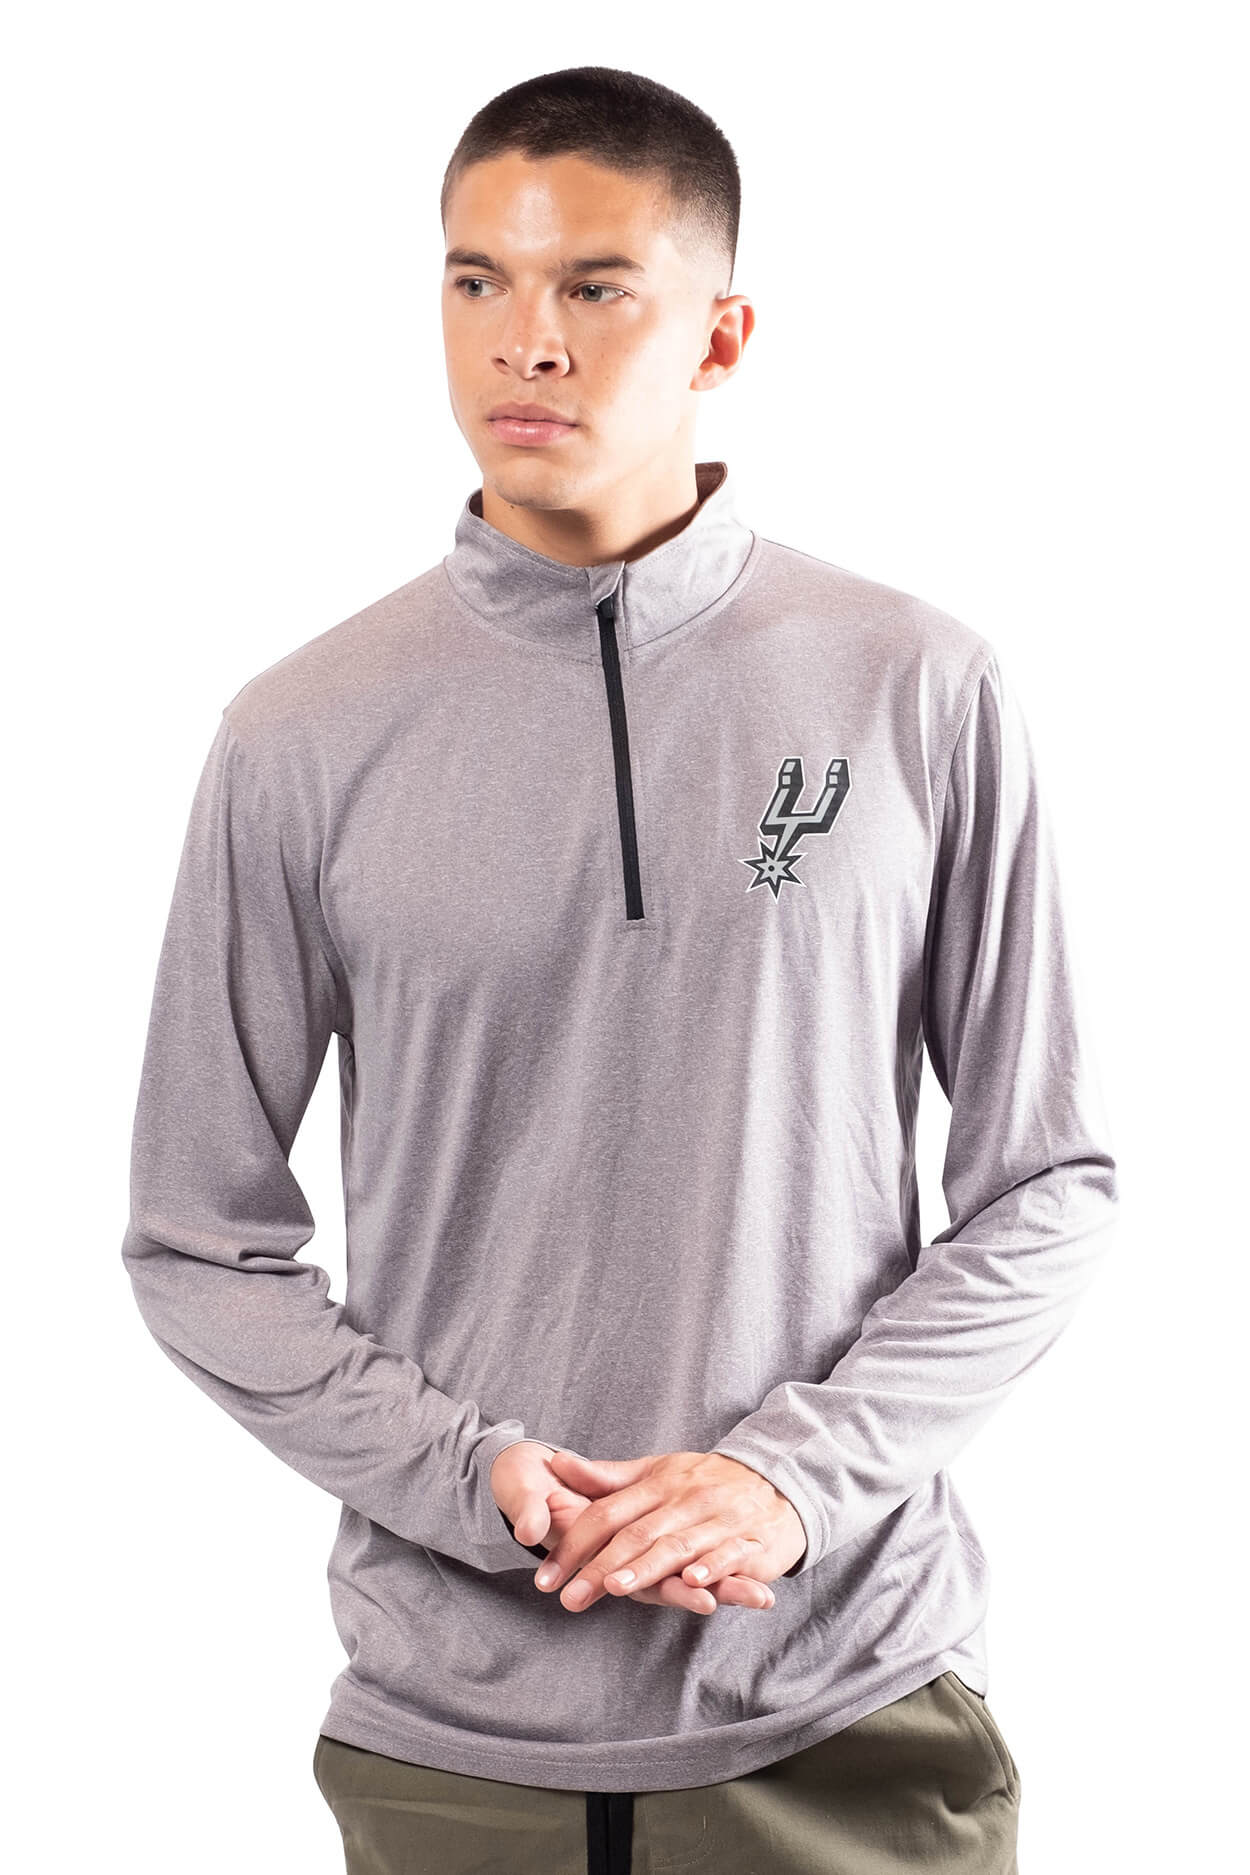 NBA San Antonio Spurs Men's Quarter Zip Quick Dry Tee|San Antonio Spurs